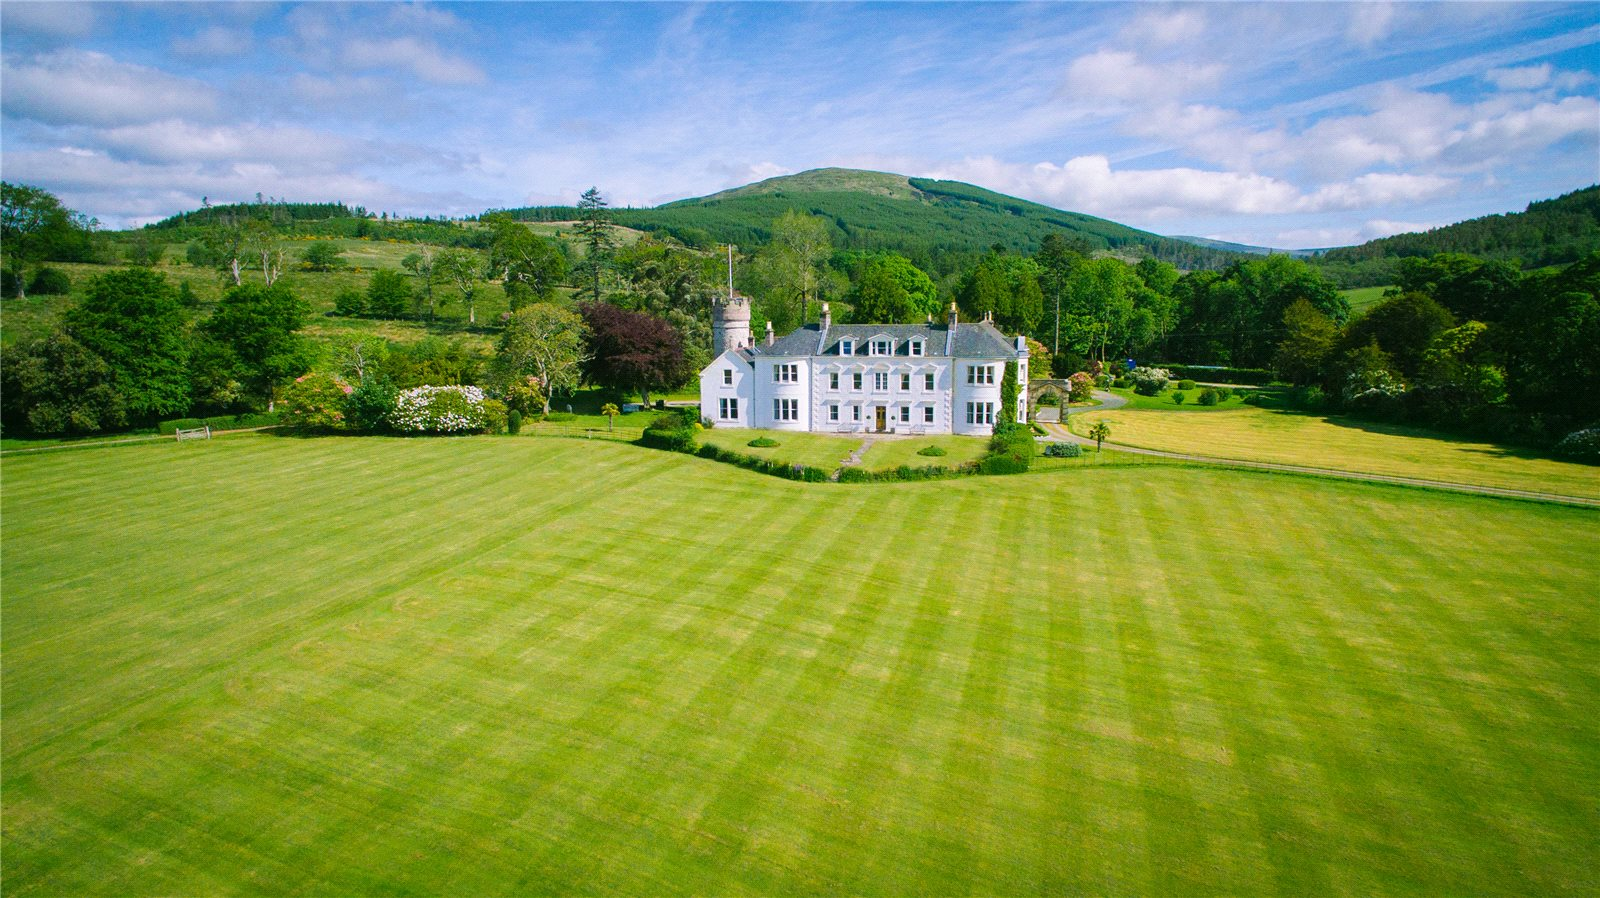 Apartments / Residences for Sale at Toward, Dunoon, Argyll, PA23 Scotland